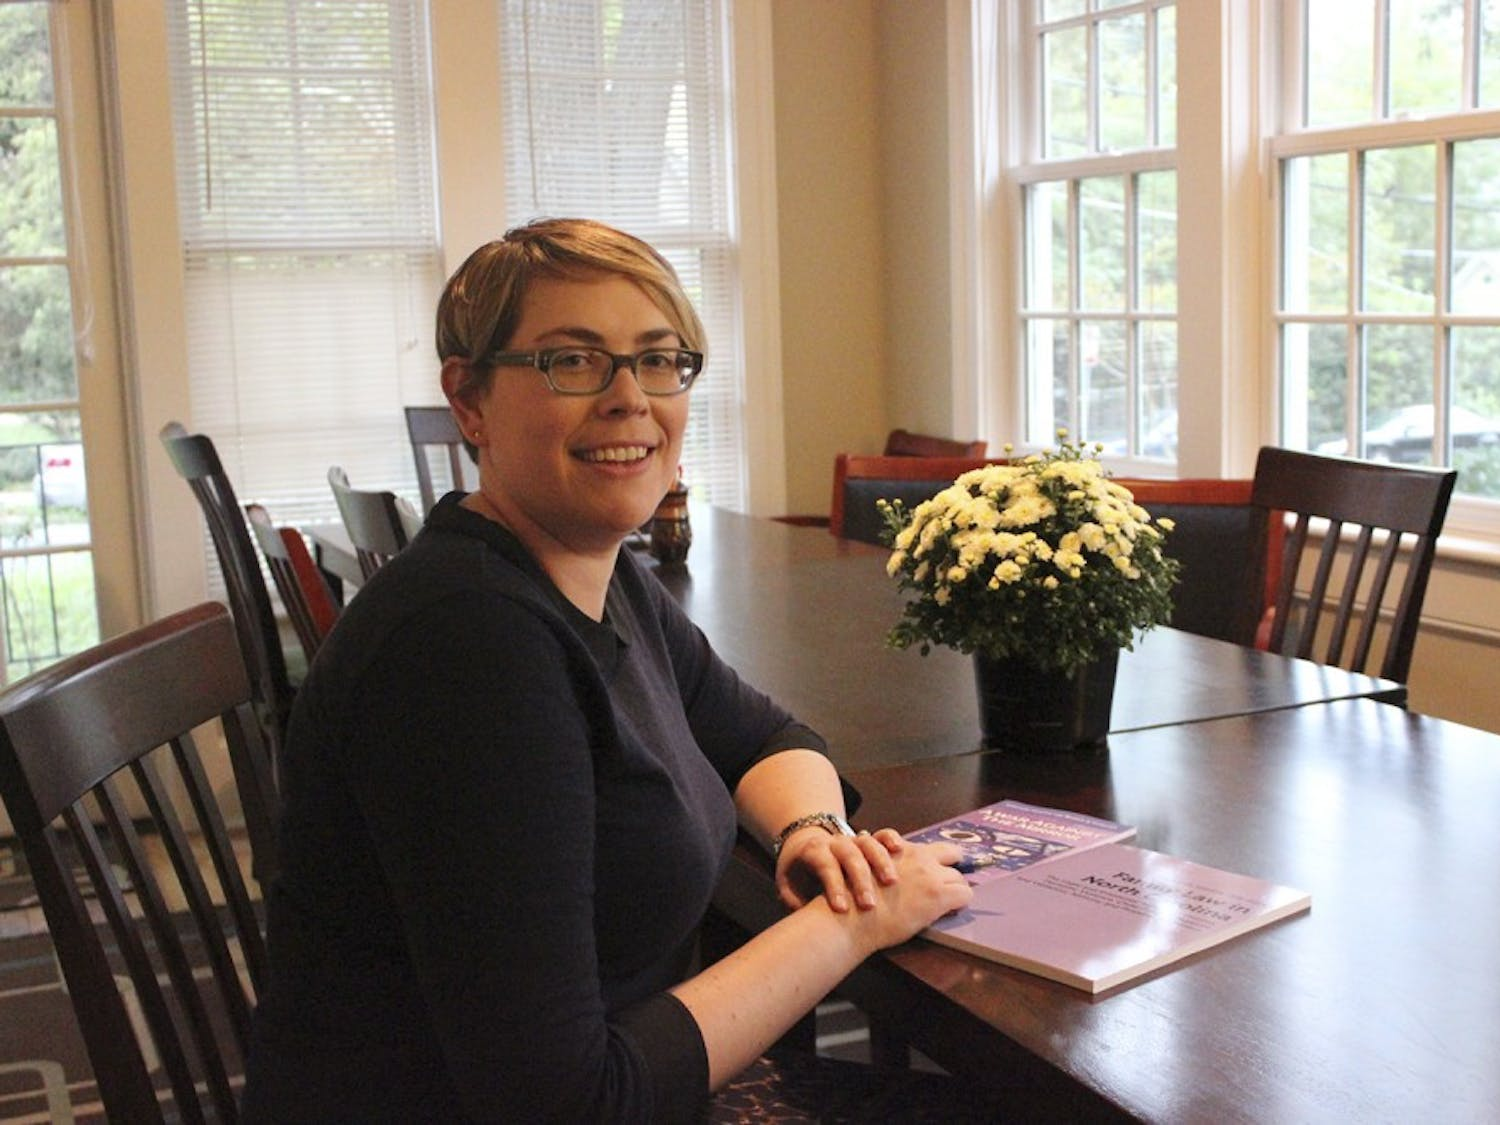 Cordelia Heaney is the new executive director of Compass Center for women and families.